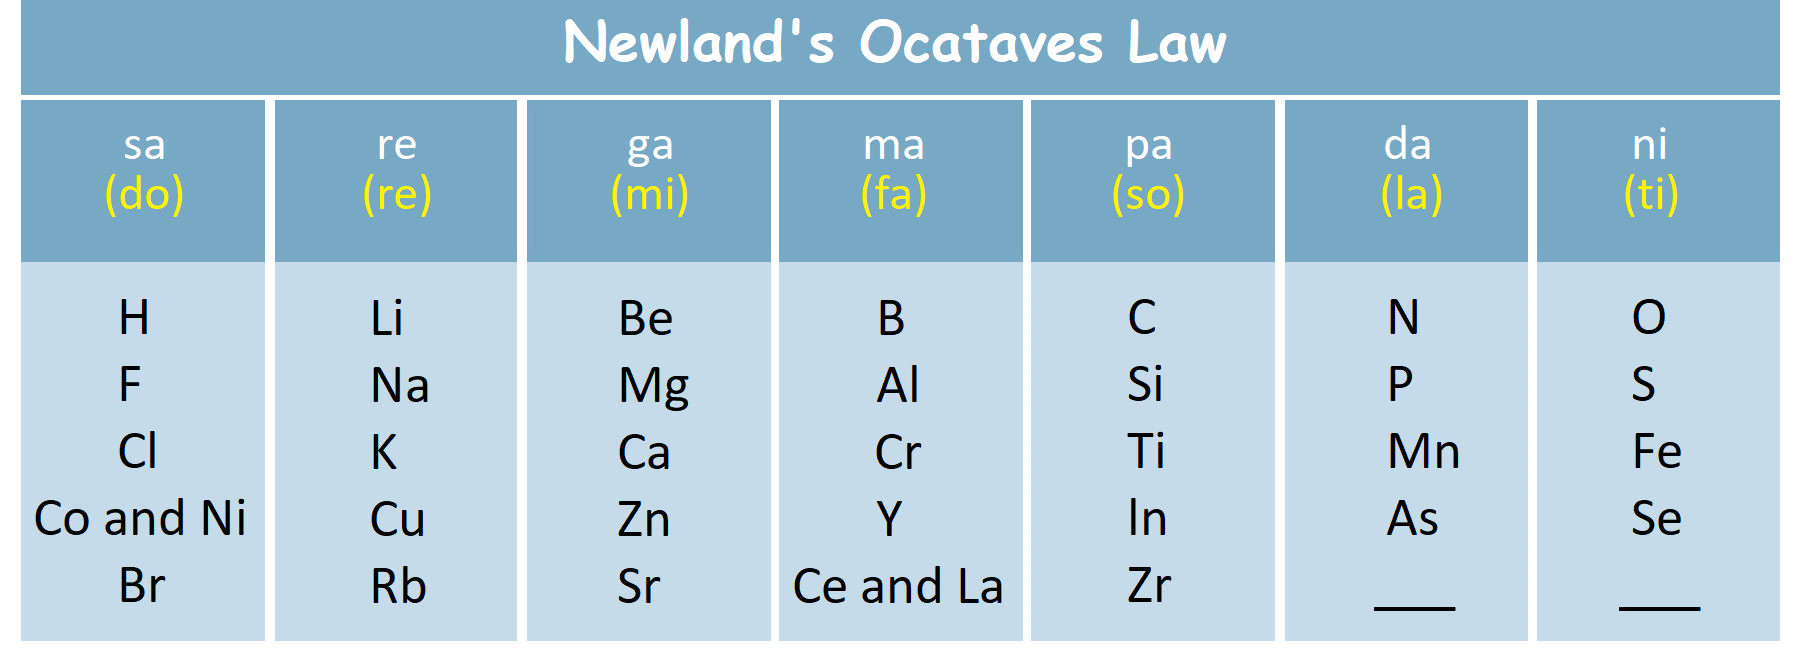 newlands octaves law